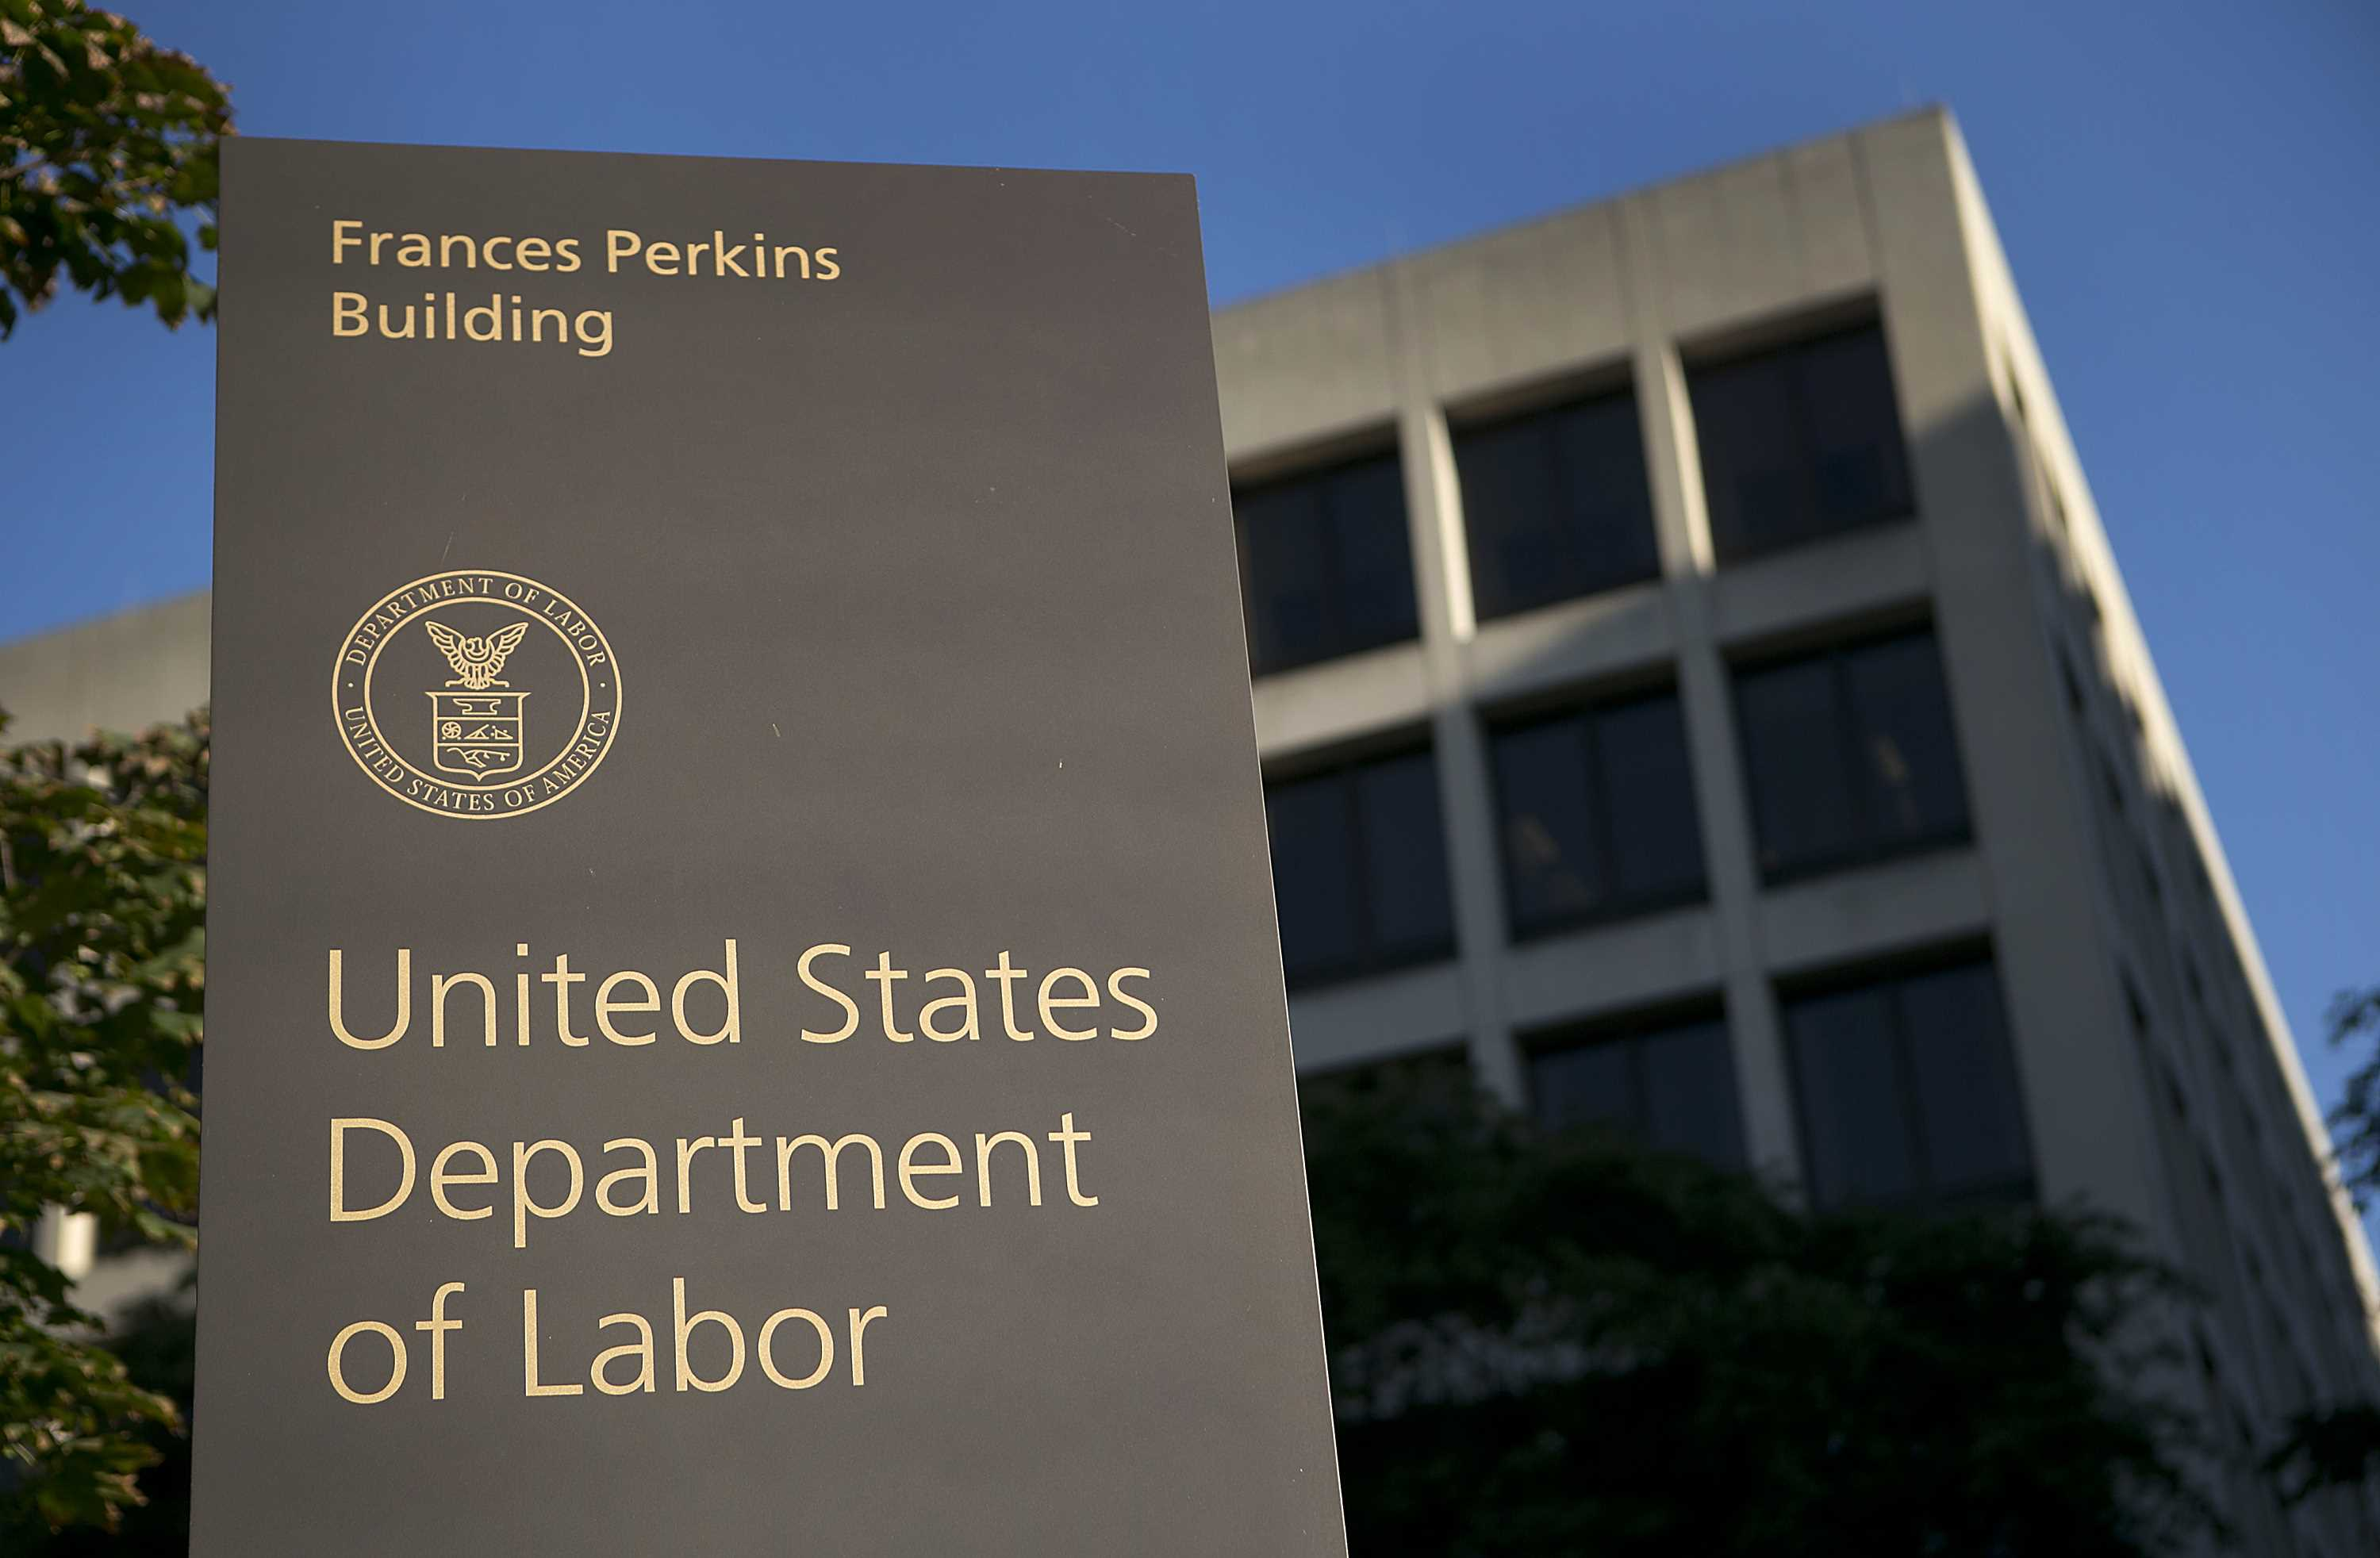 DOL seeks comments on employees' experience with misclassification